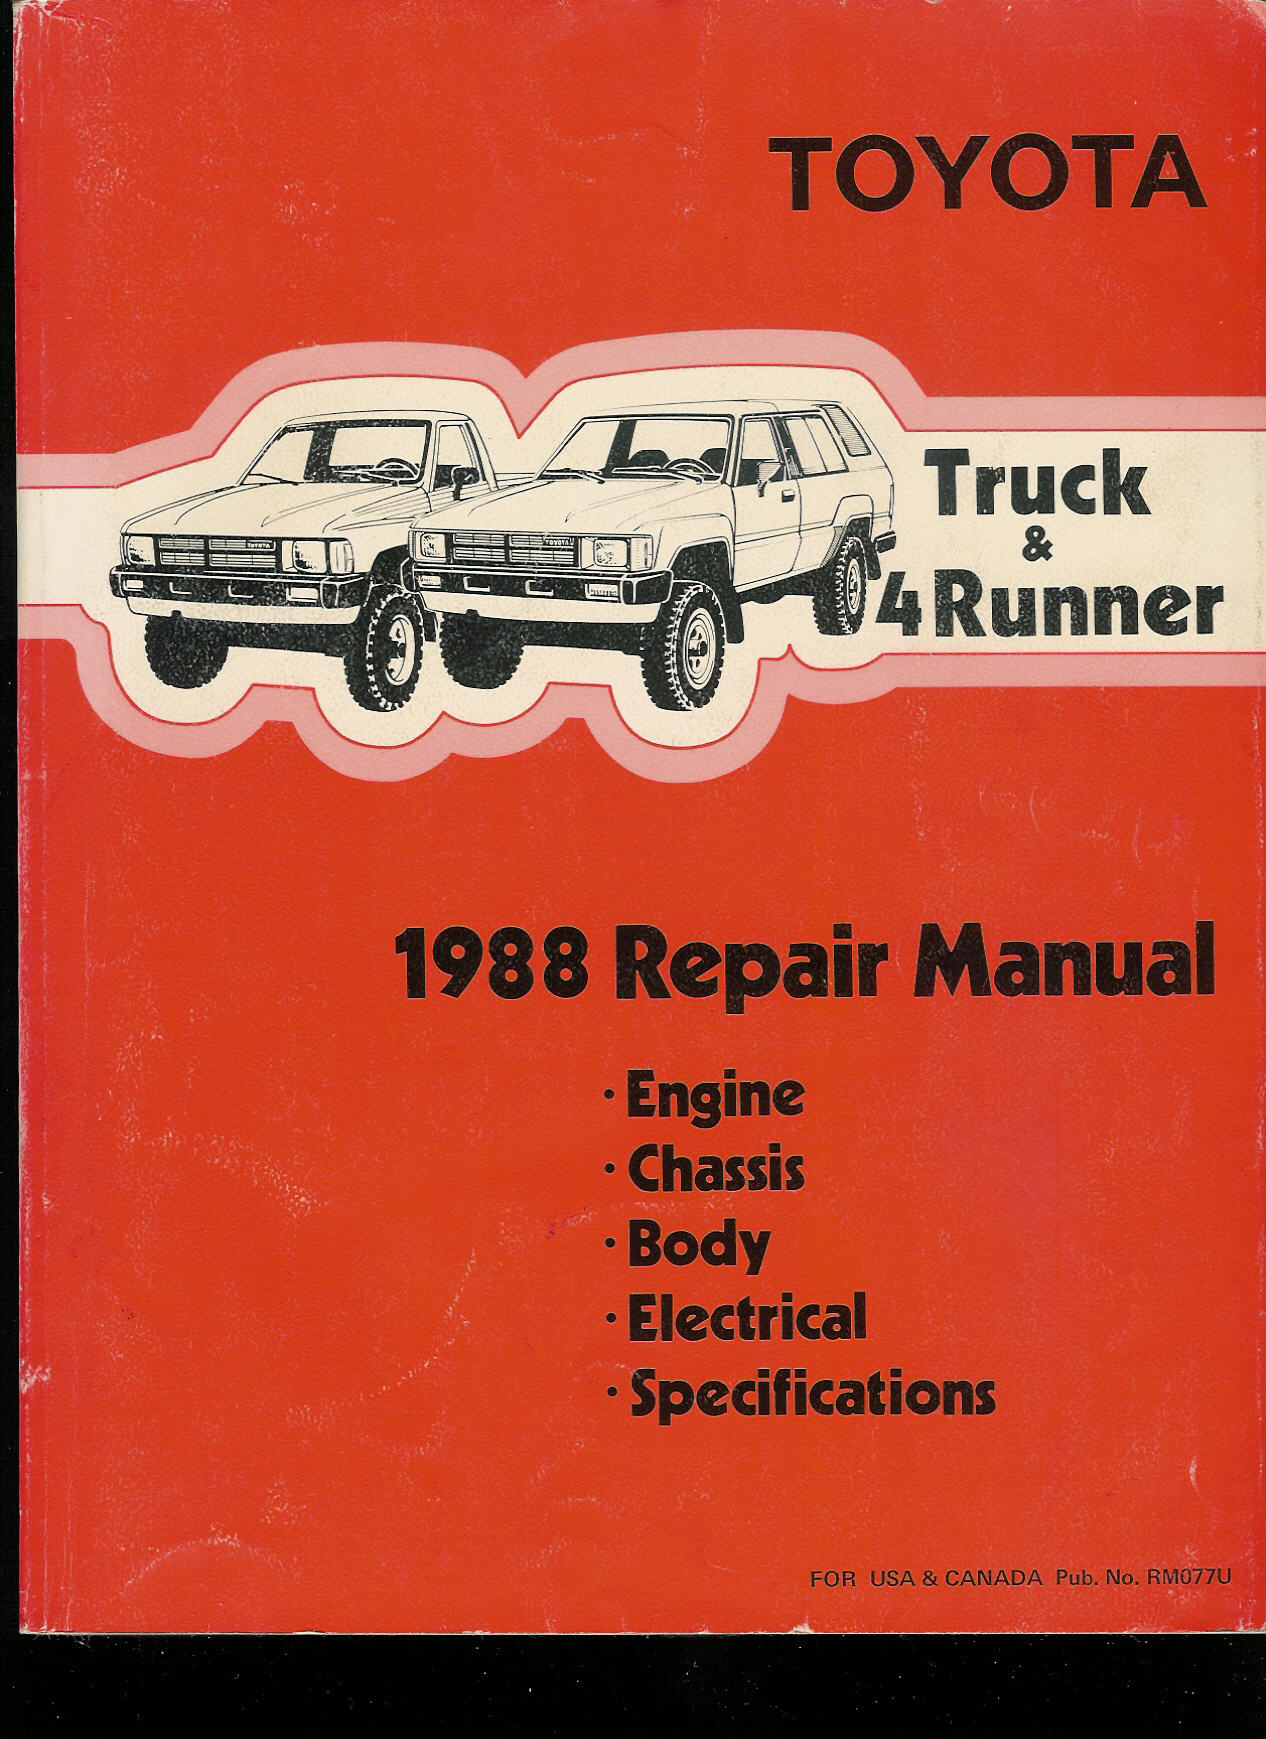 4run toyota trucks where can i get service manuals for my truck rh 4run sr5 com 1983 toyota pickup owner's manual 1983 toyota pickup owner's manual